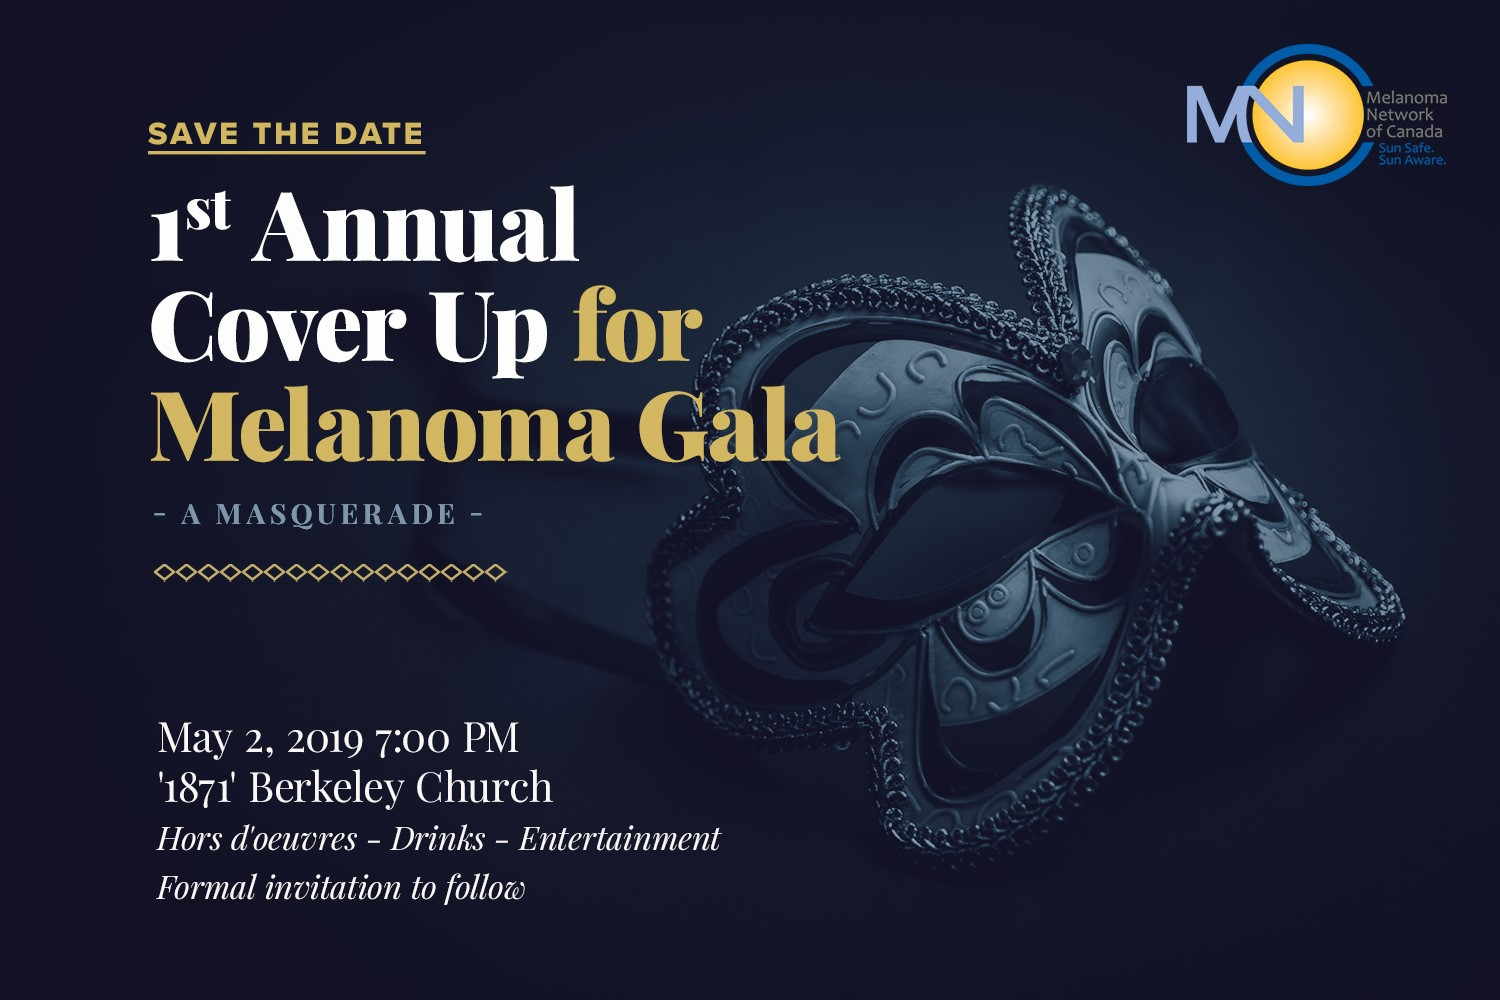 Cover up for Melanoma Gala